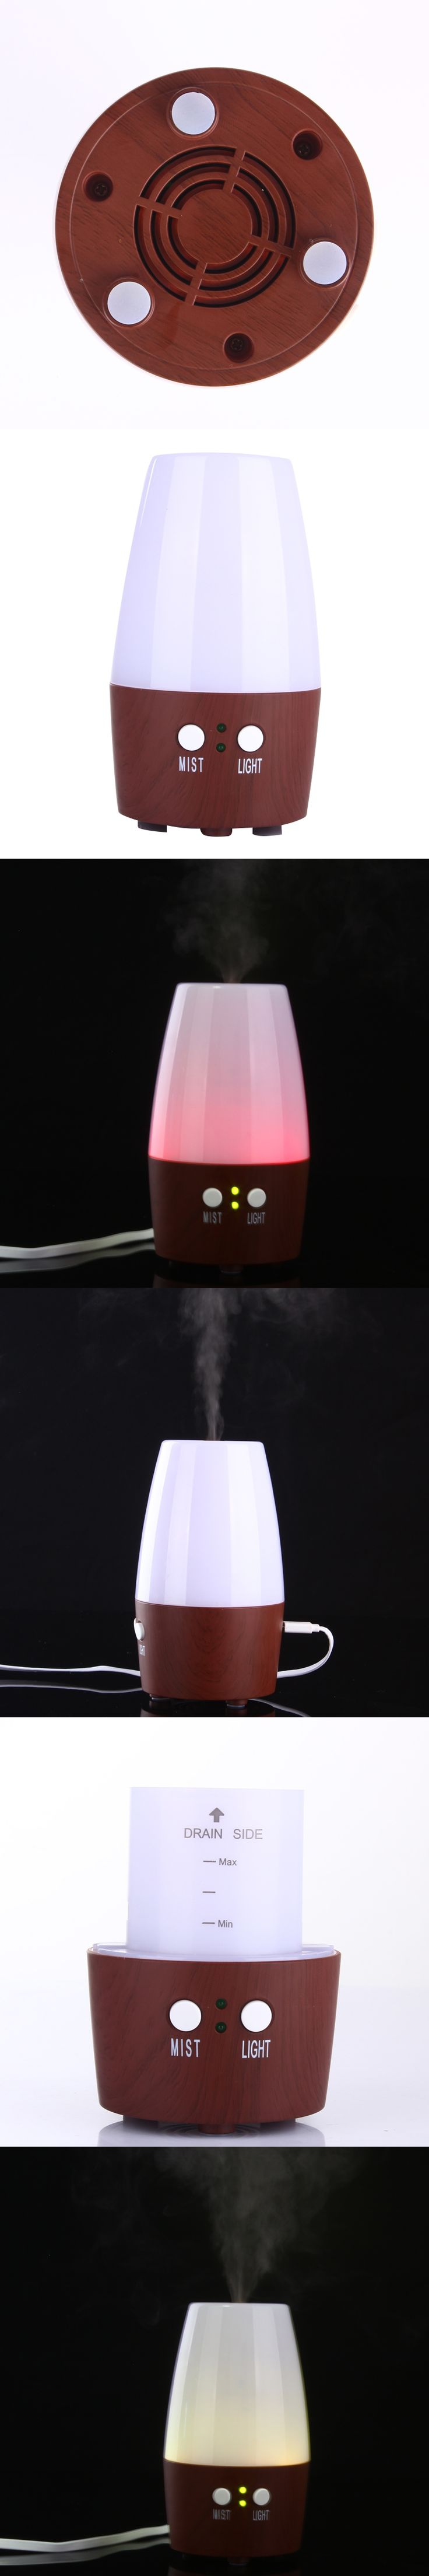 Dripping Mini Usb Ultrasonic Humidifier Aromatherapy Diffusers Atomizer Home Air Purifier Mist Maker Humidifiers